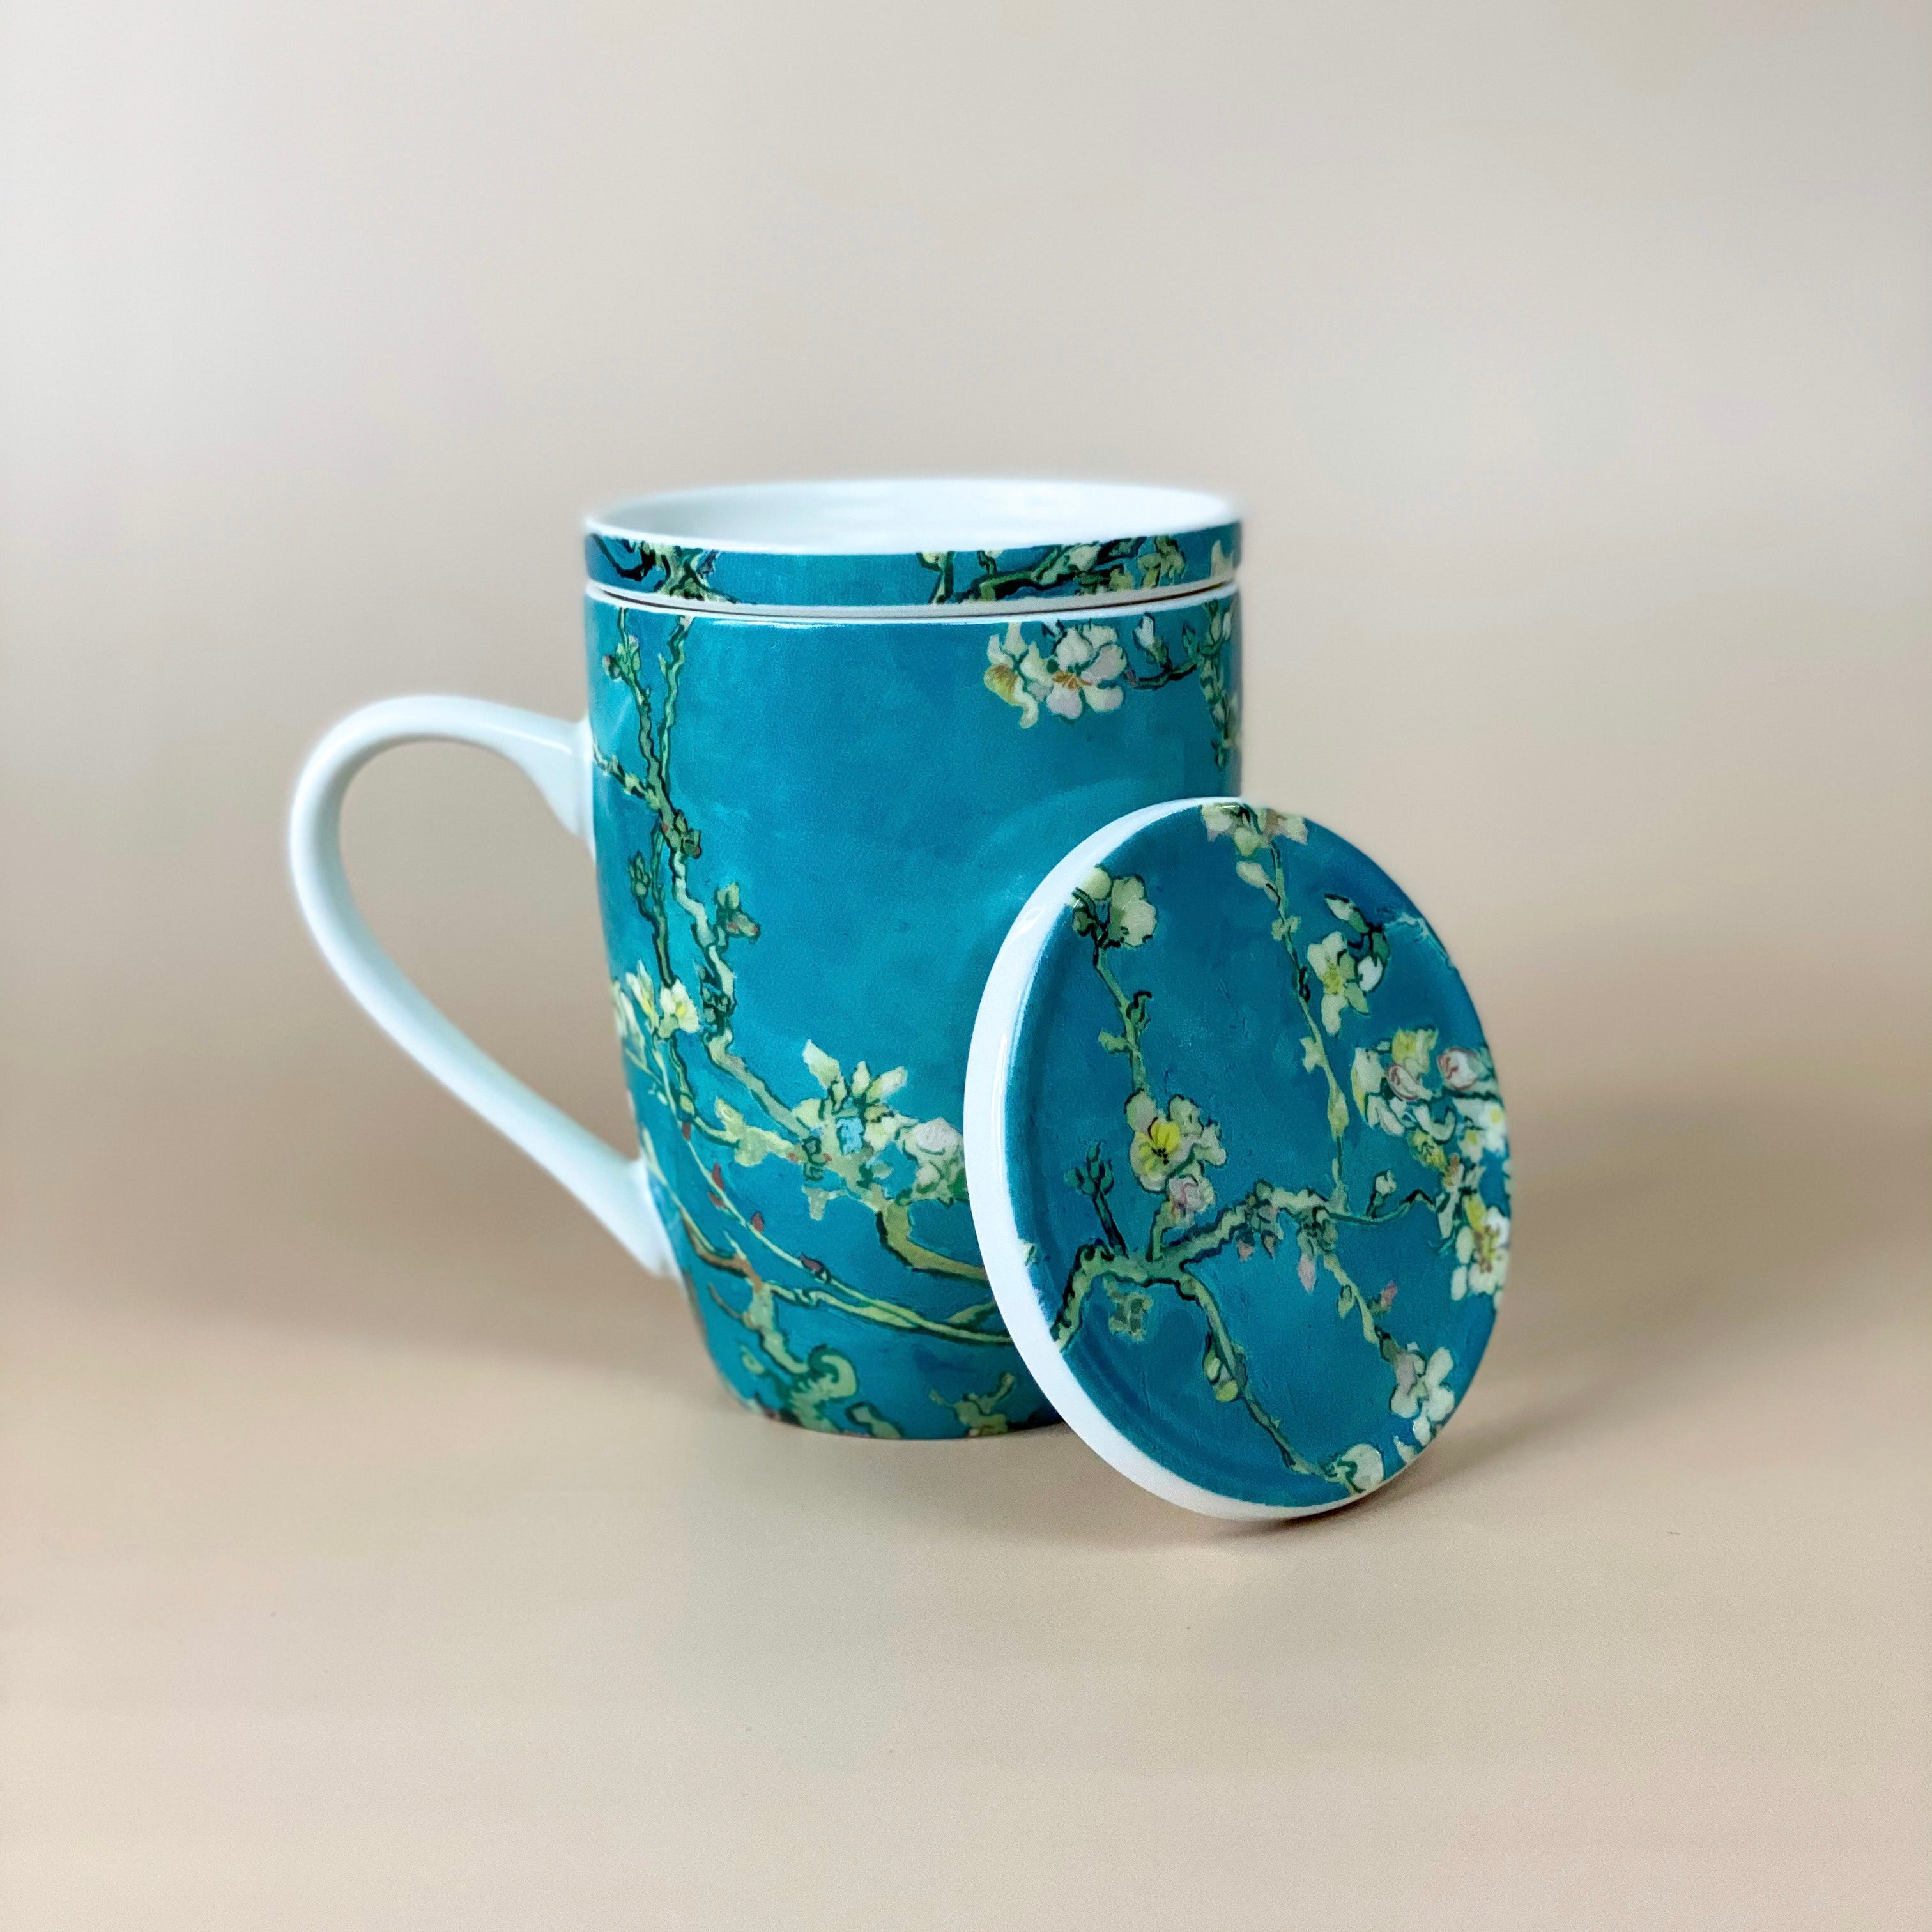 Almond Blossom Mug with Tea Infuser